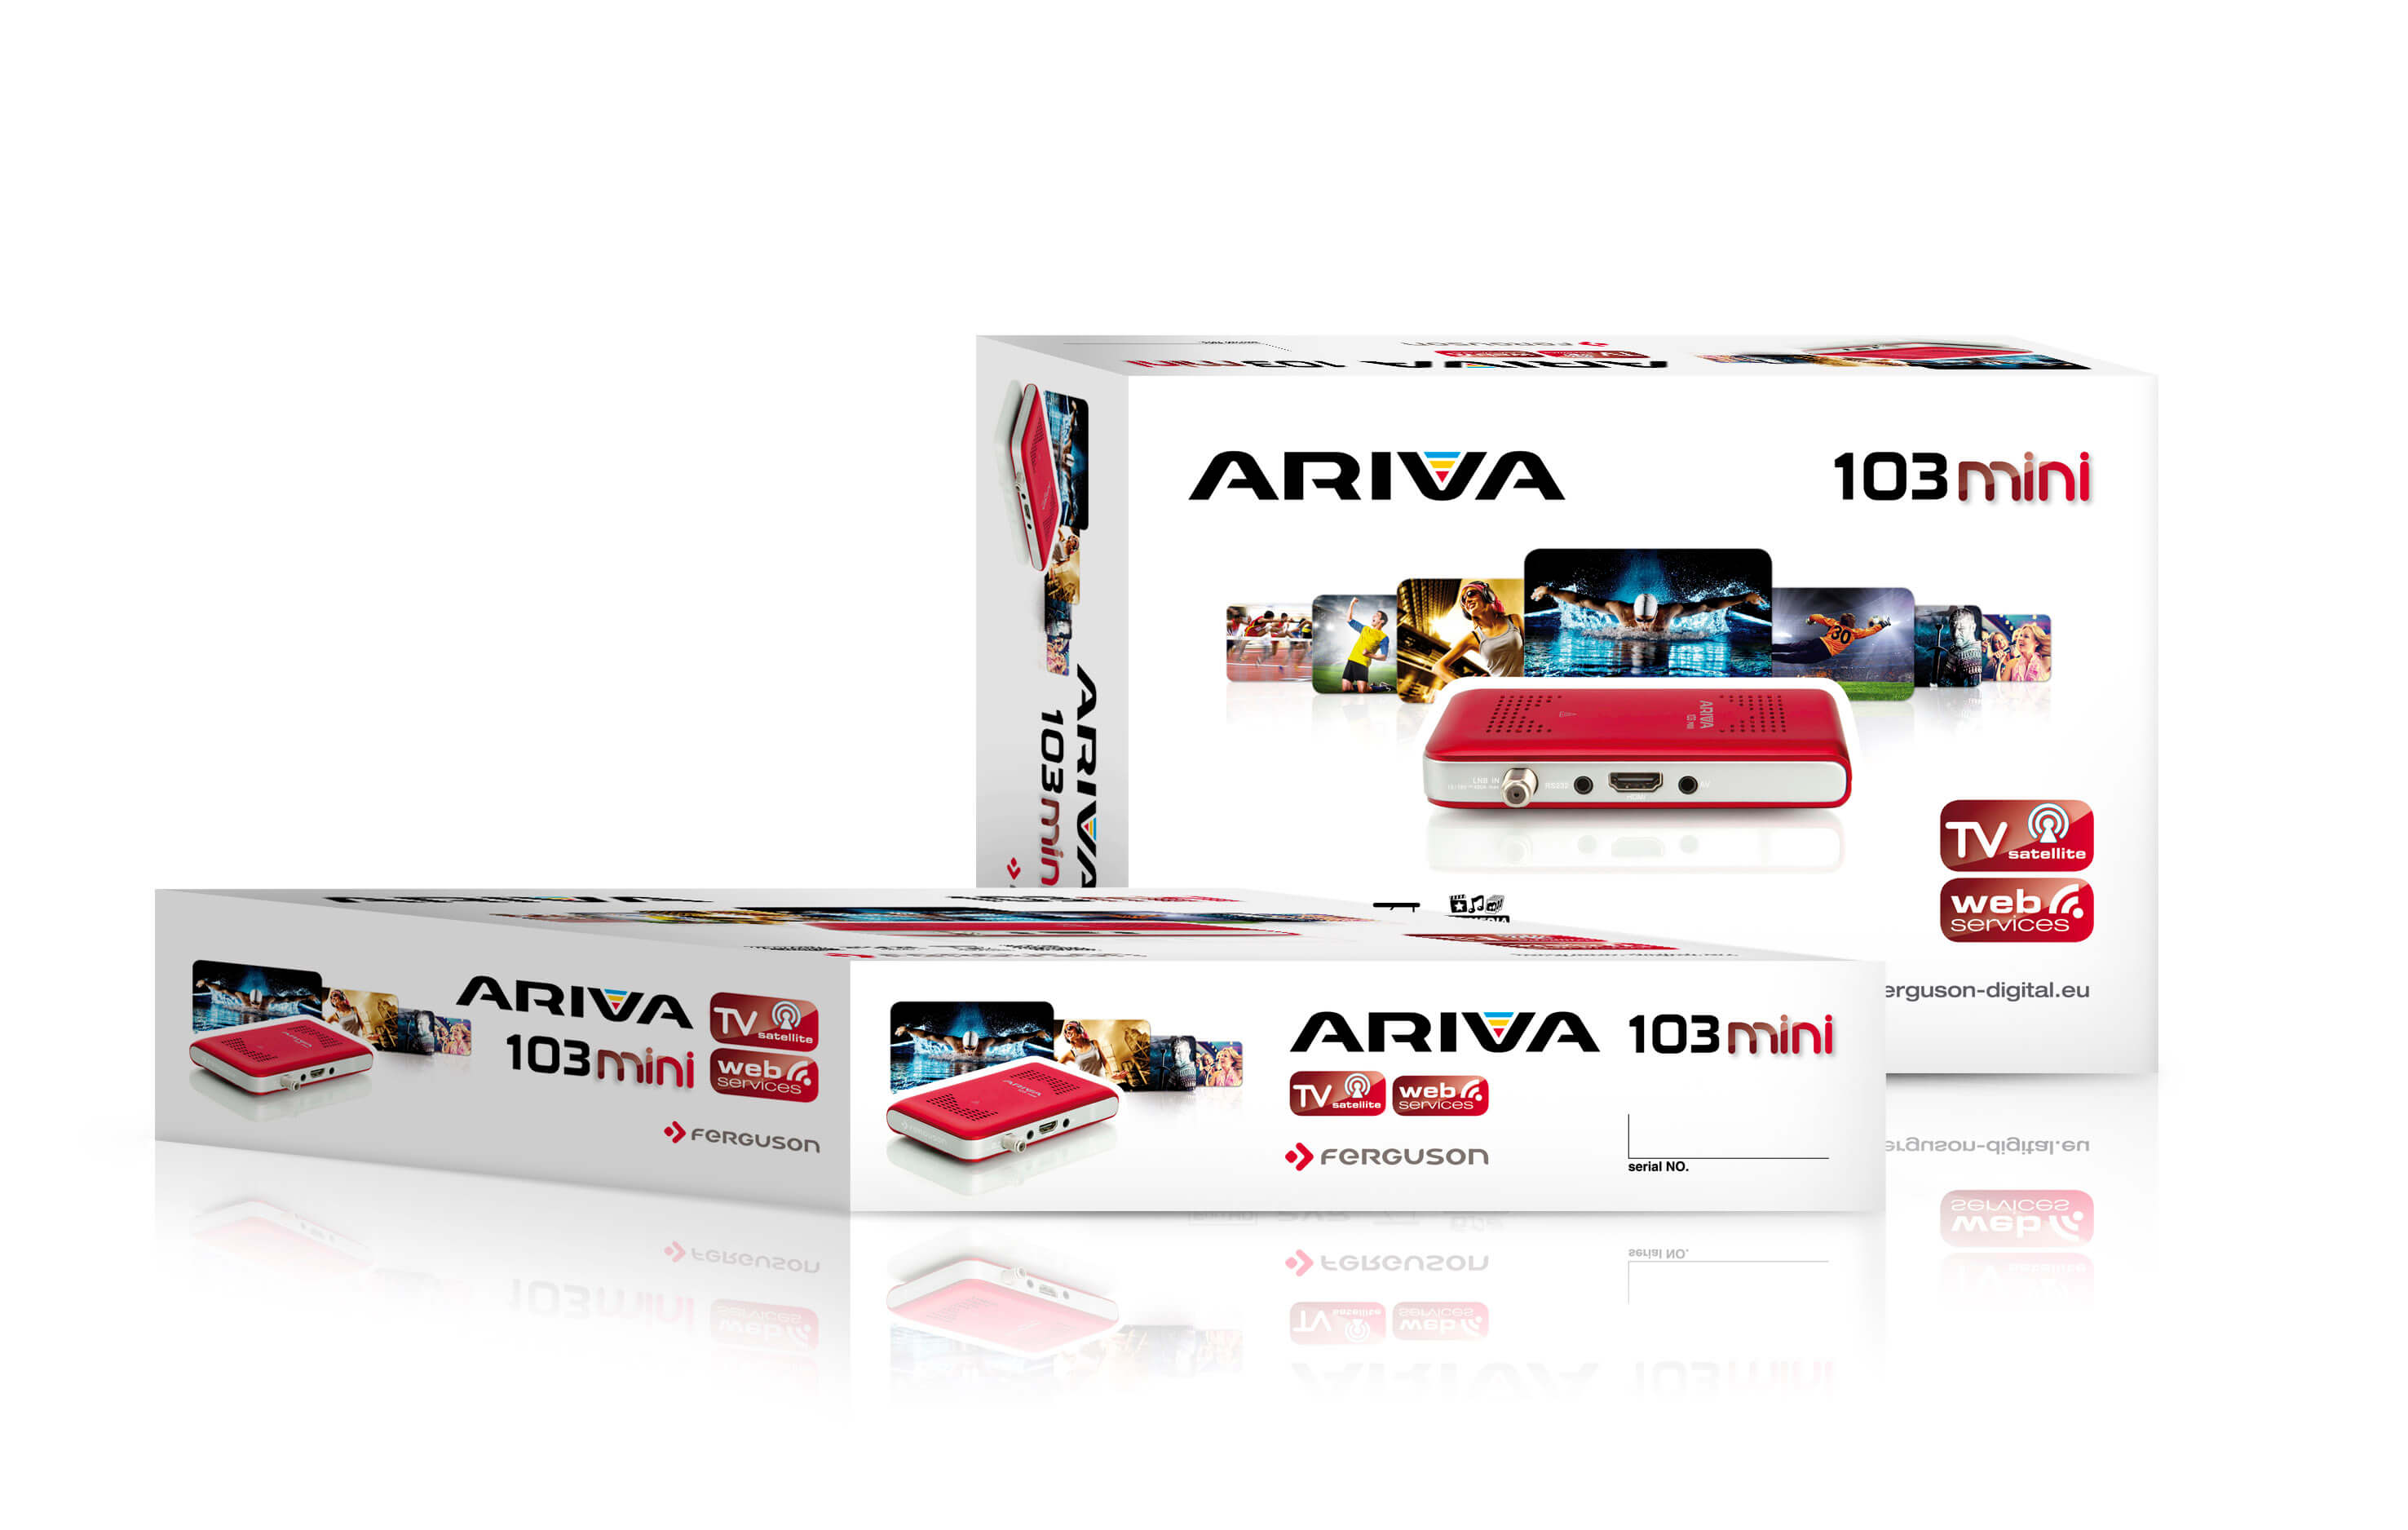 ariva_103mini_box